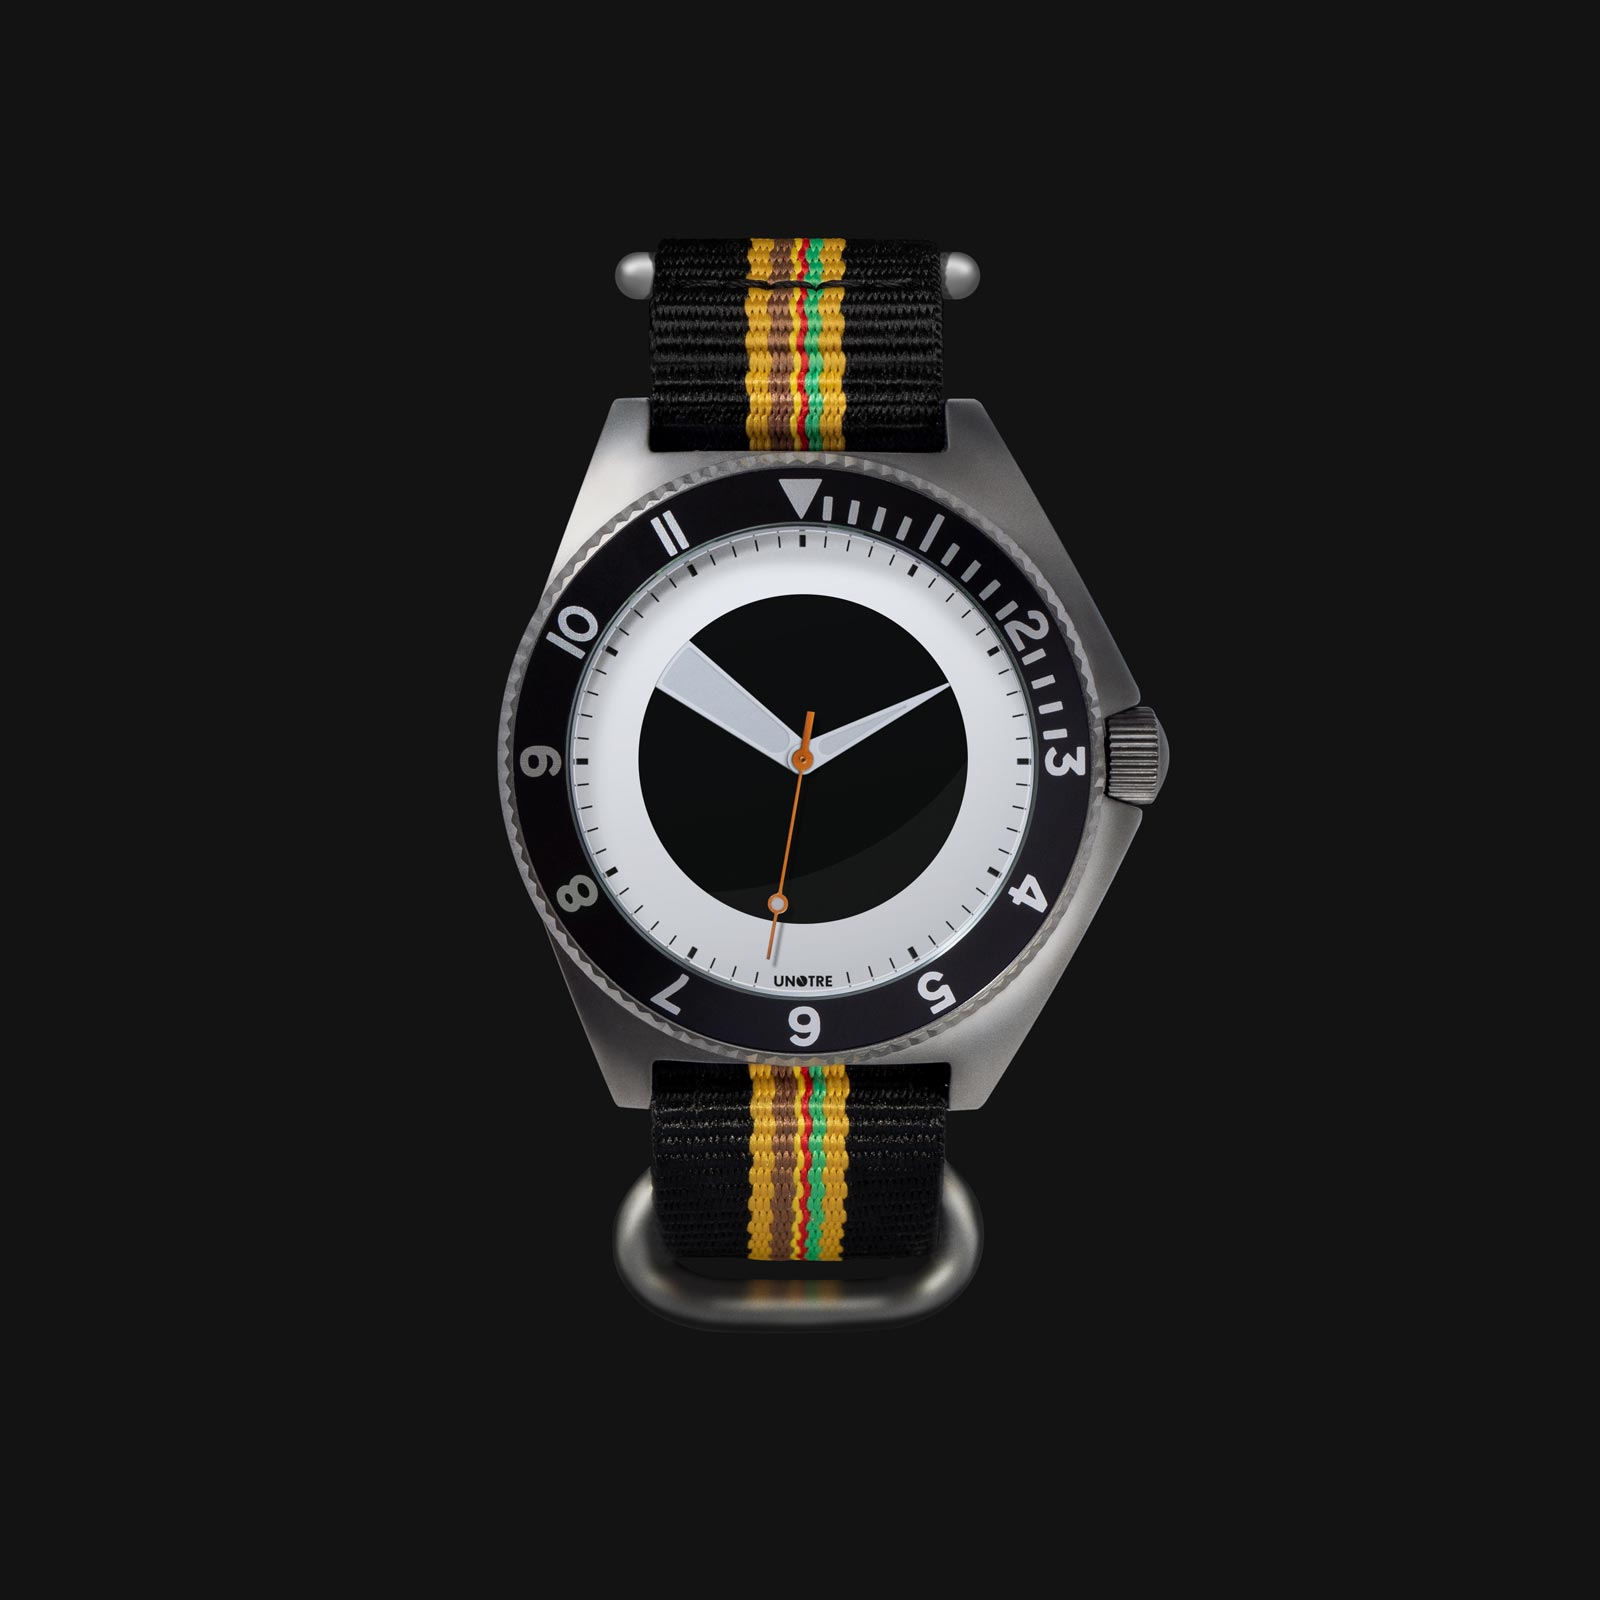 Electronic watch UNOTRE - Normal version